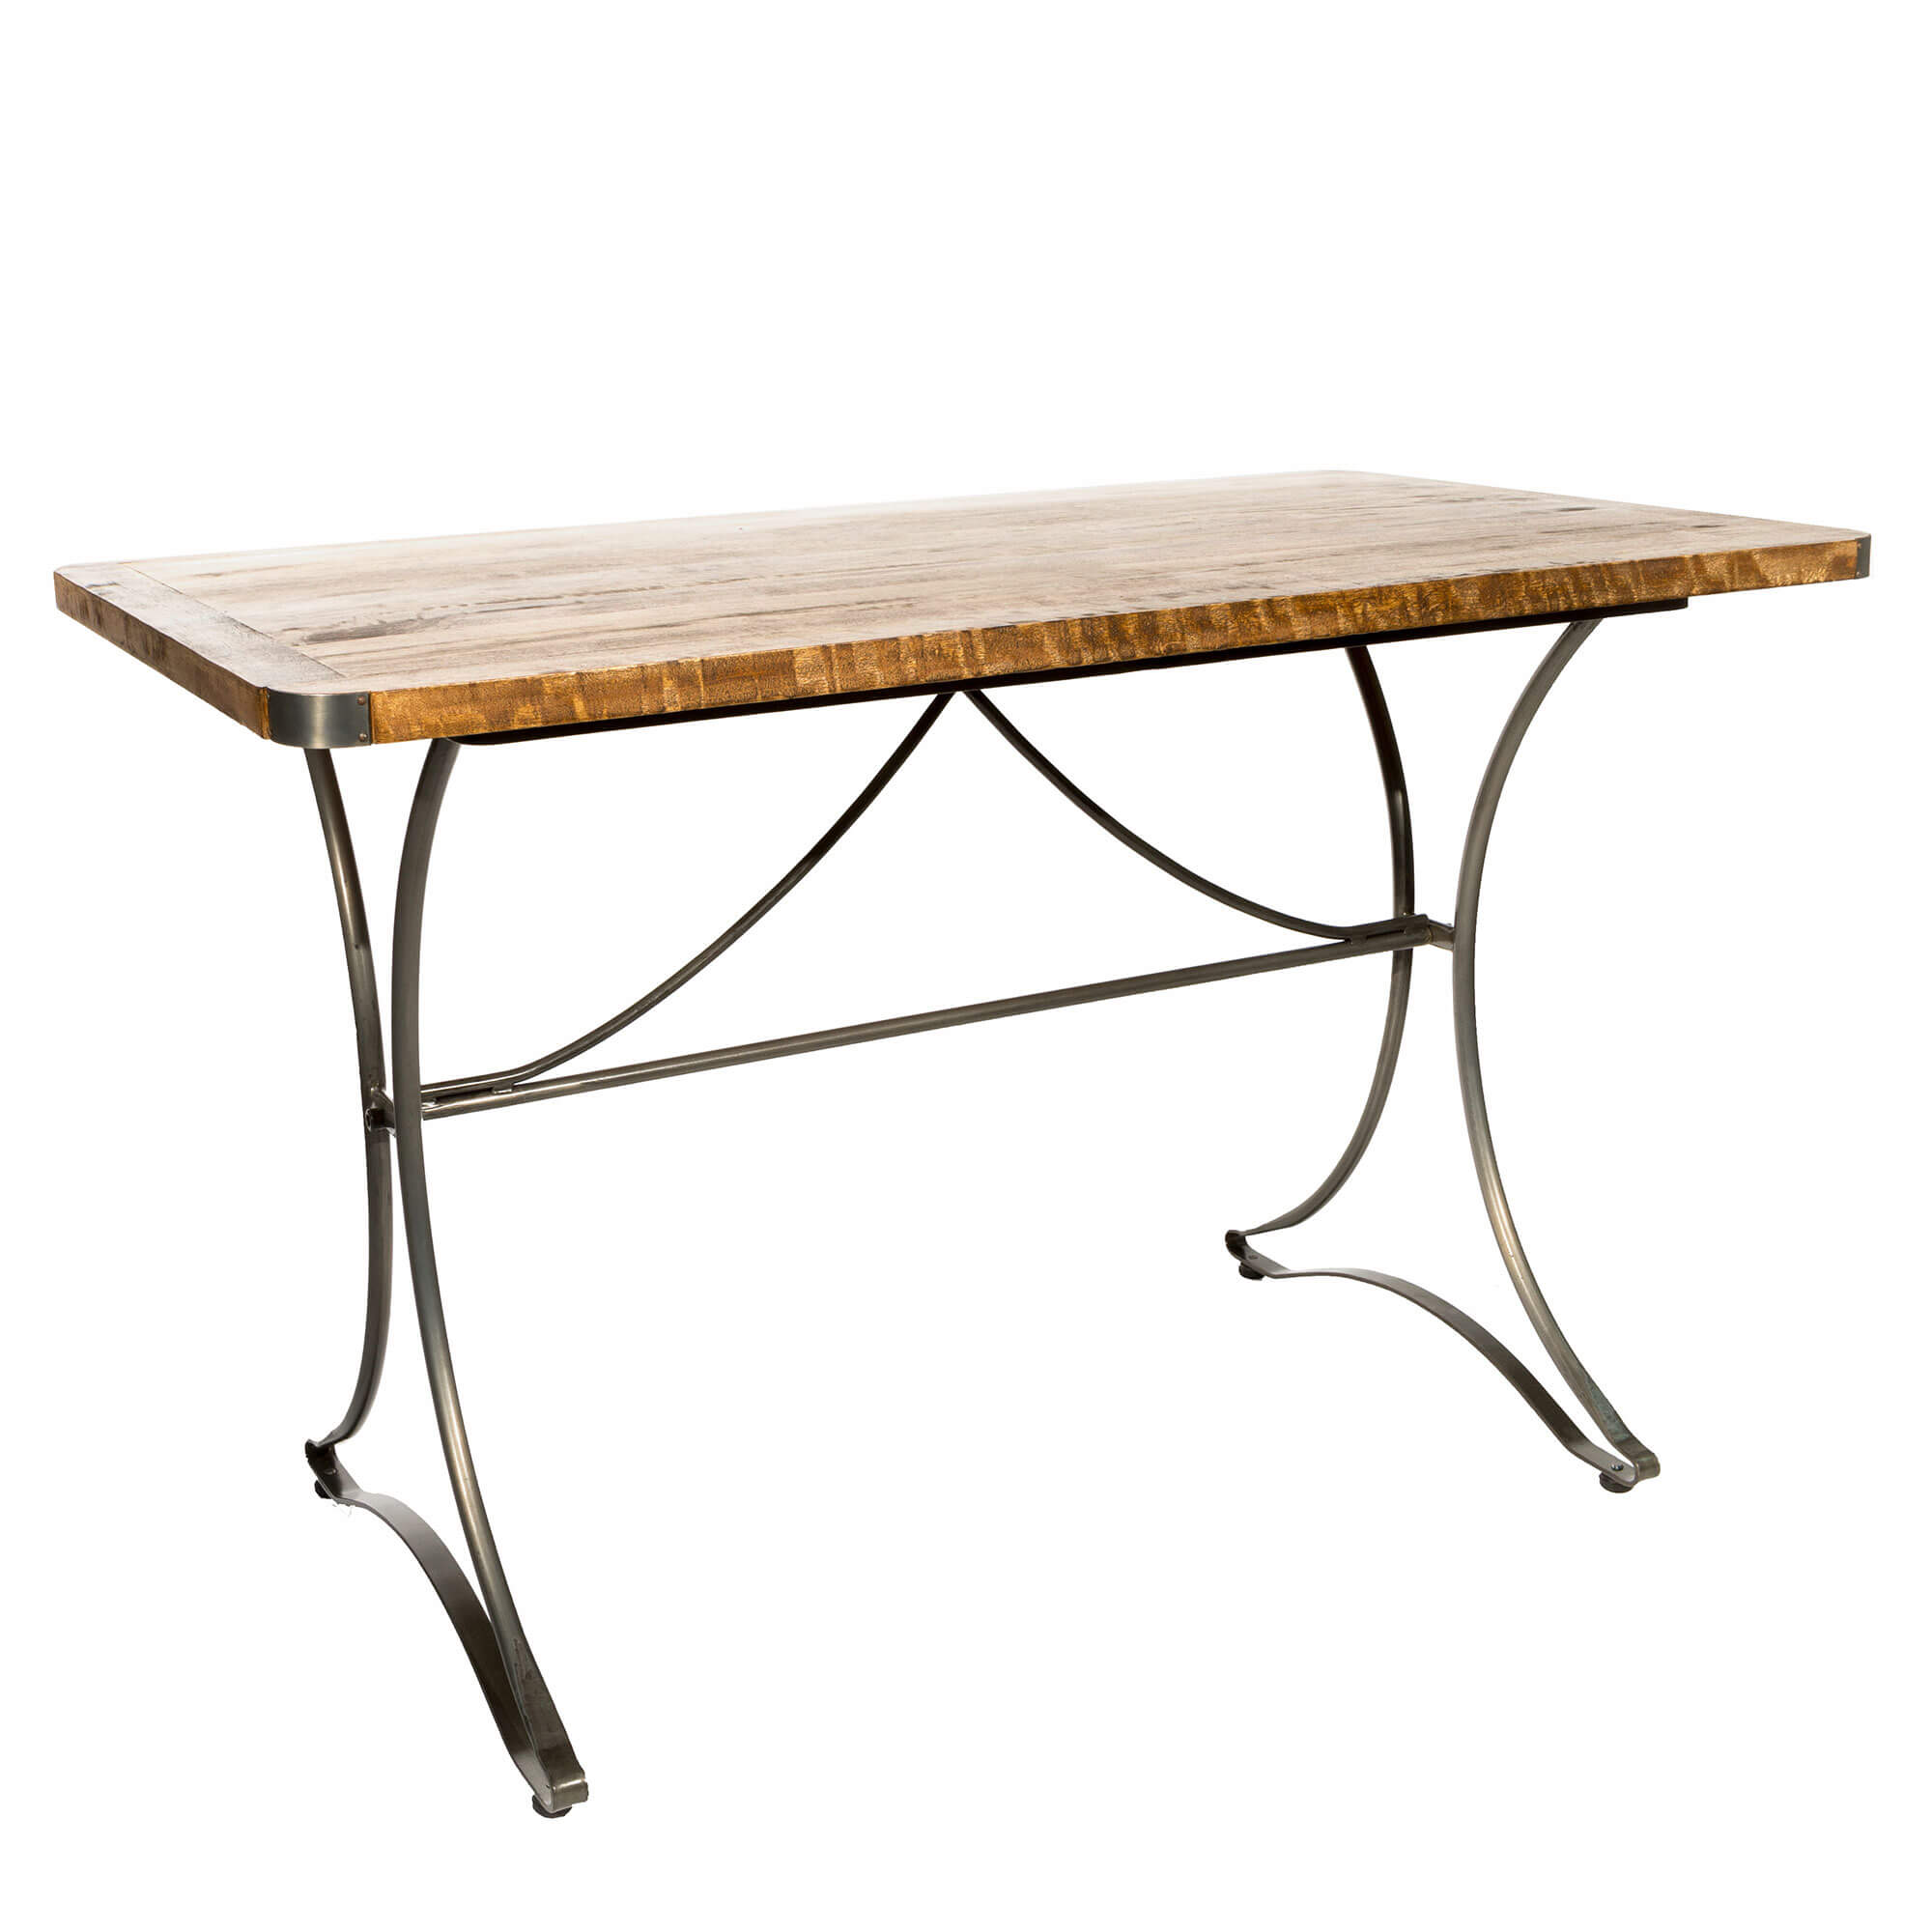 Urban Rectangular Cafe Table70X120 | Furniture Supplies UK